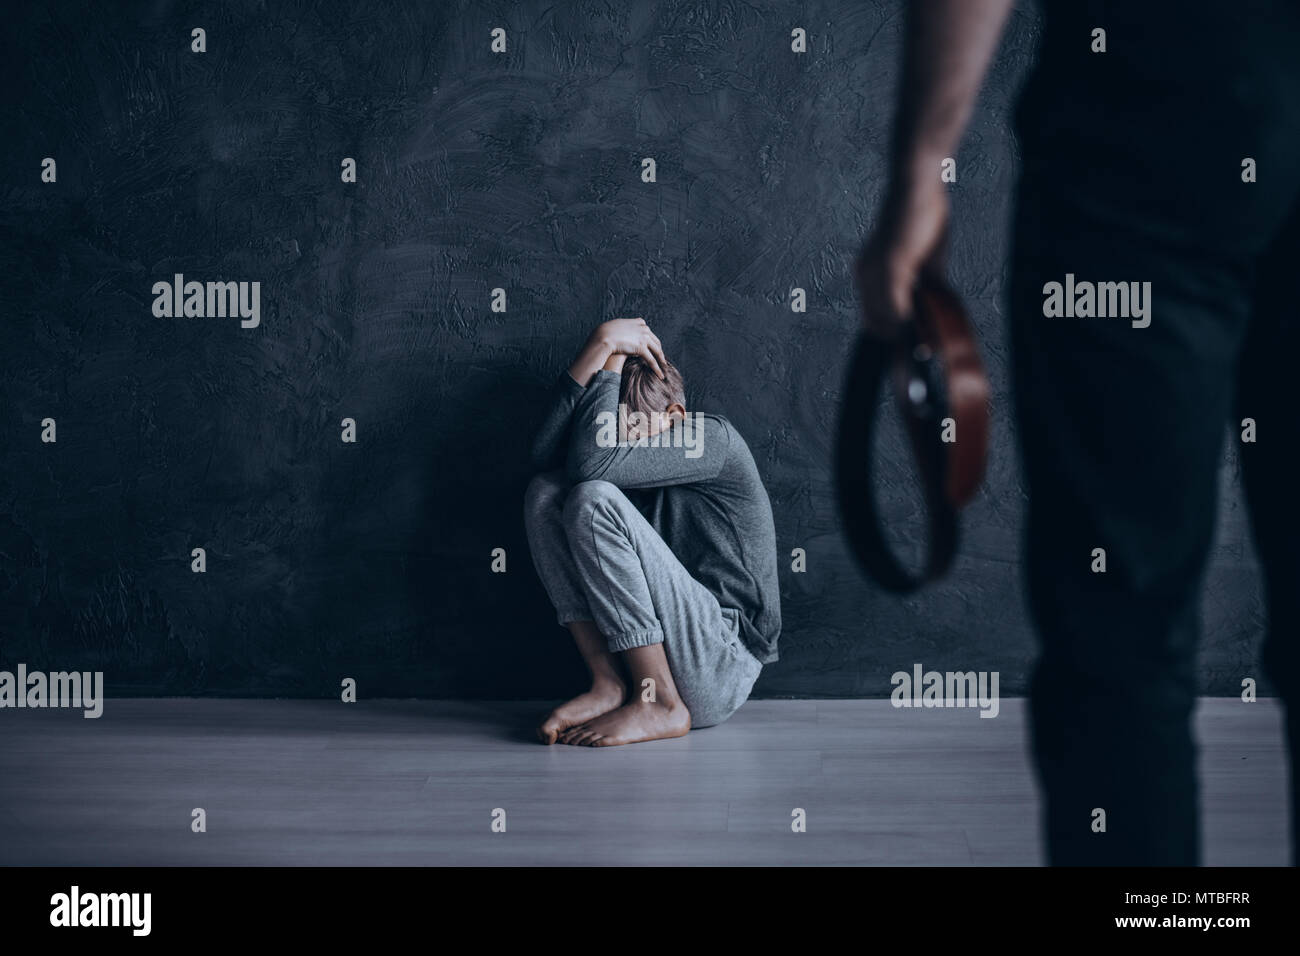 Heartbreaking, conceptual photo of son beaten by his own father - Stock Image